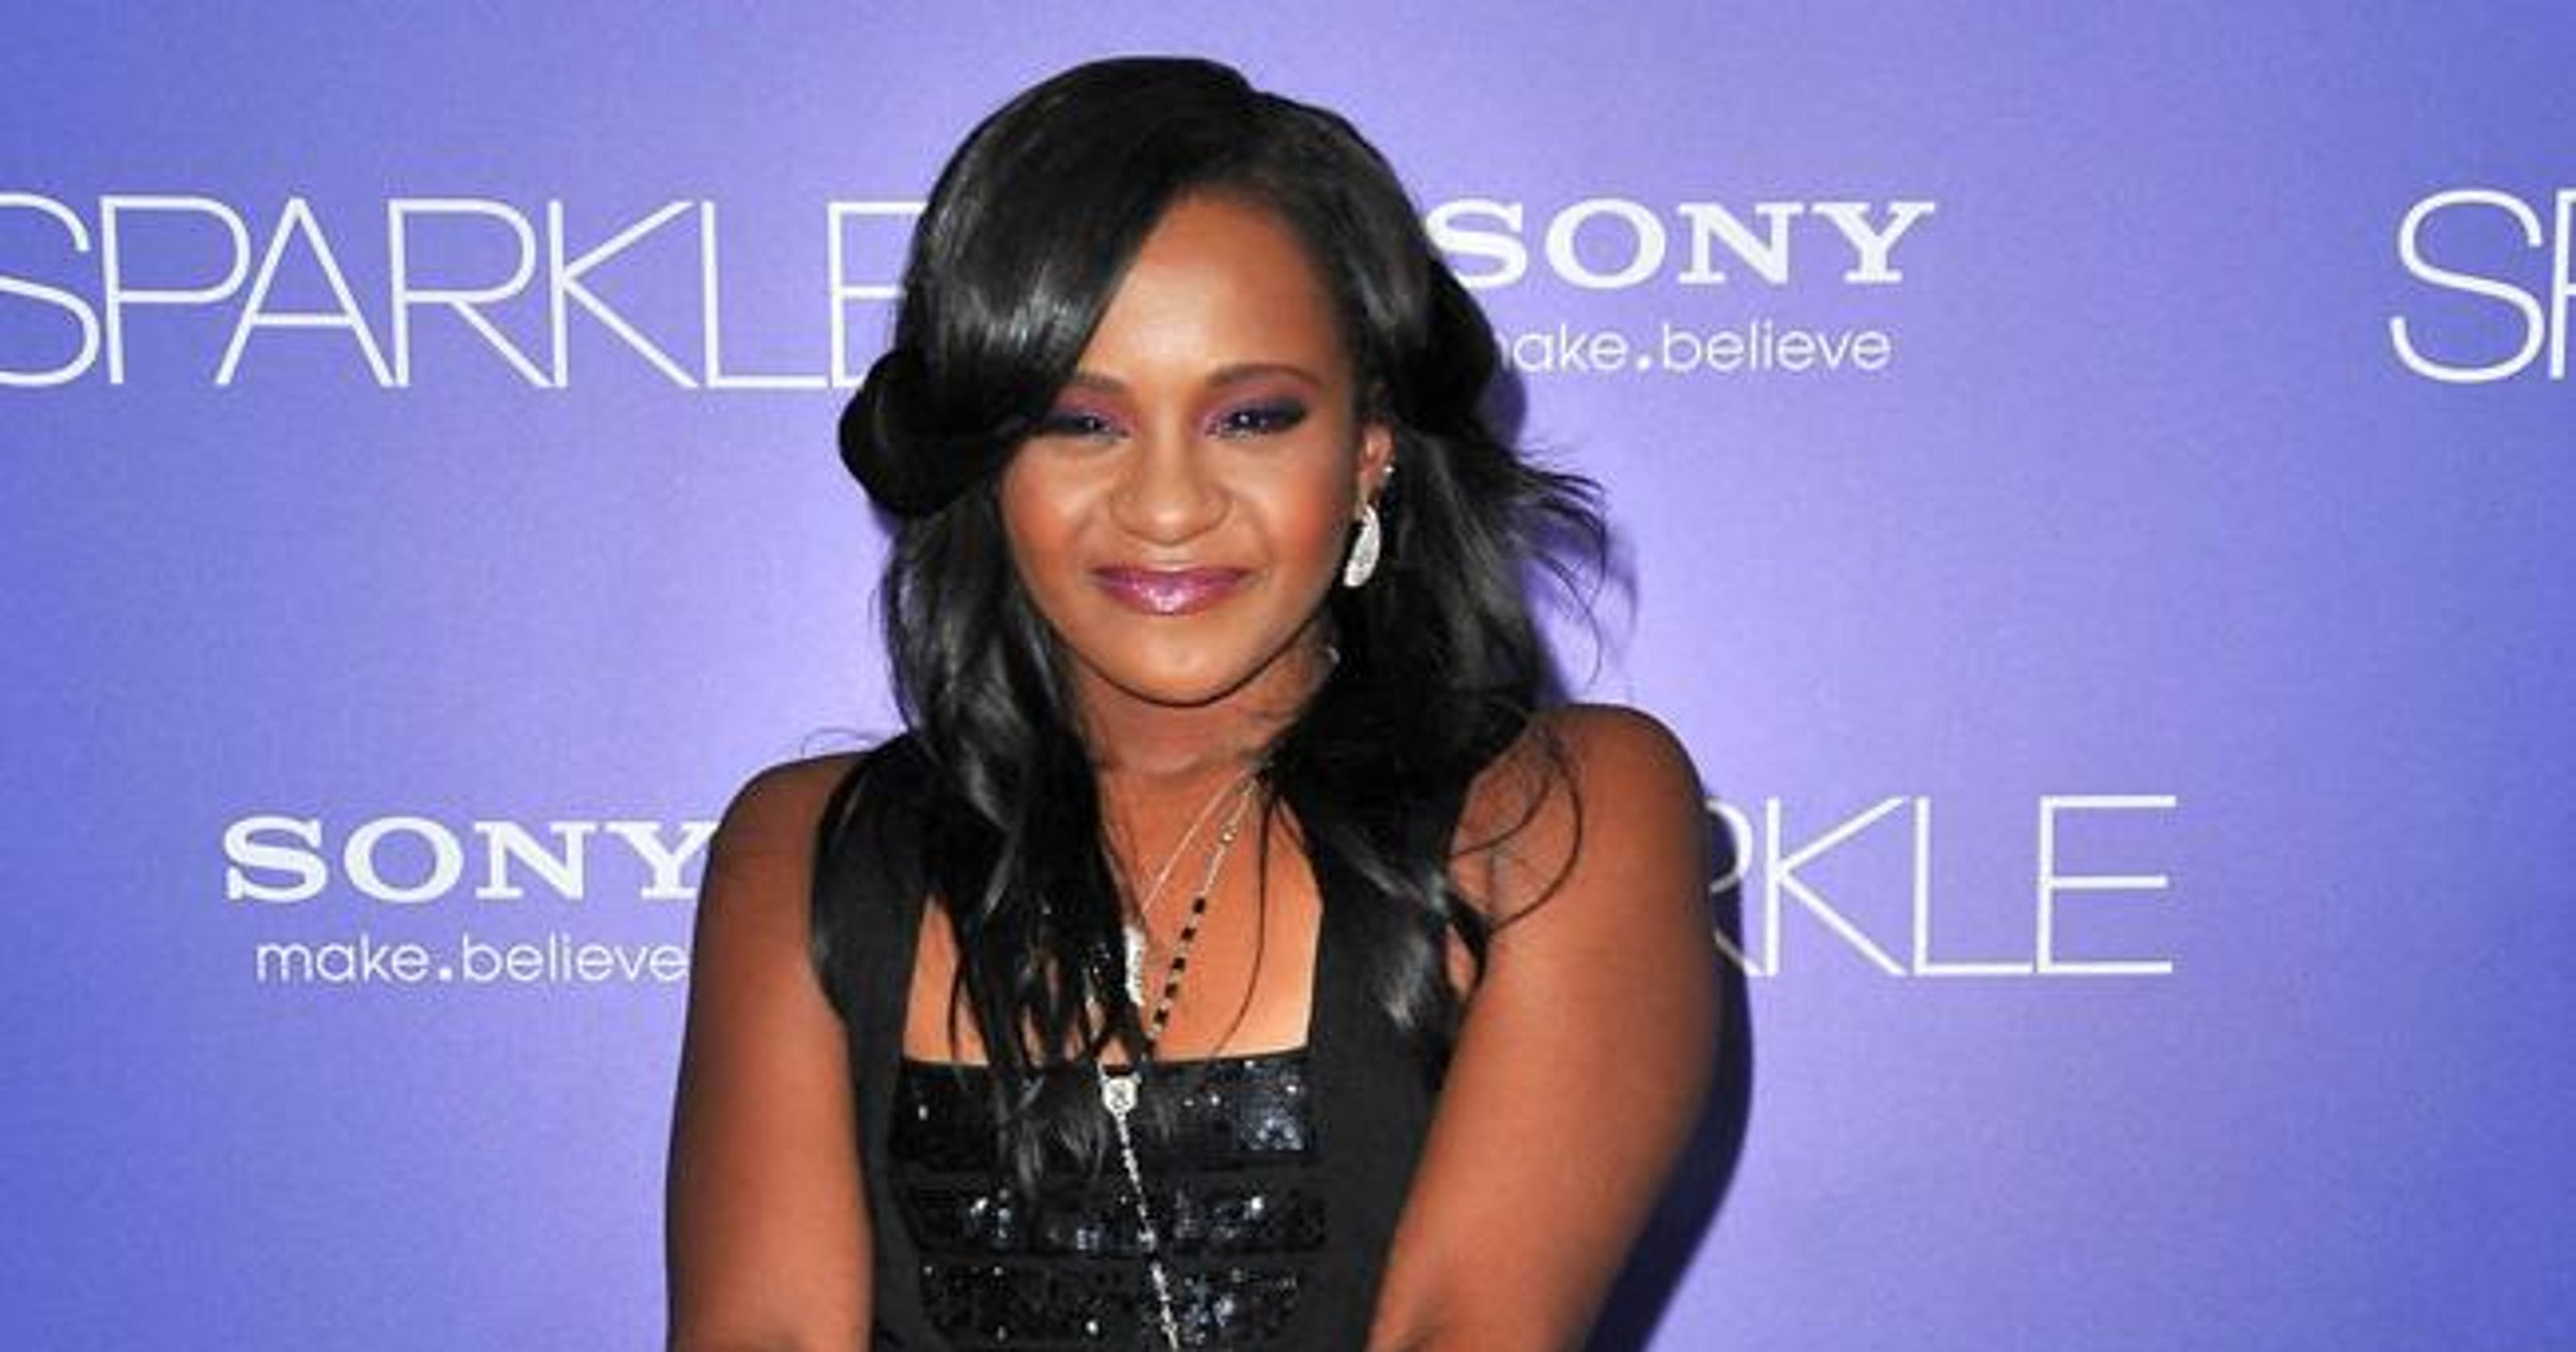 Photo Of Bobbi Kristina Brown In Casket Leaked